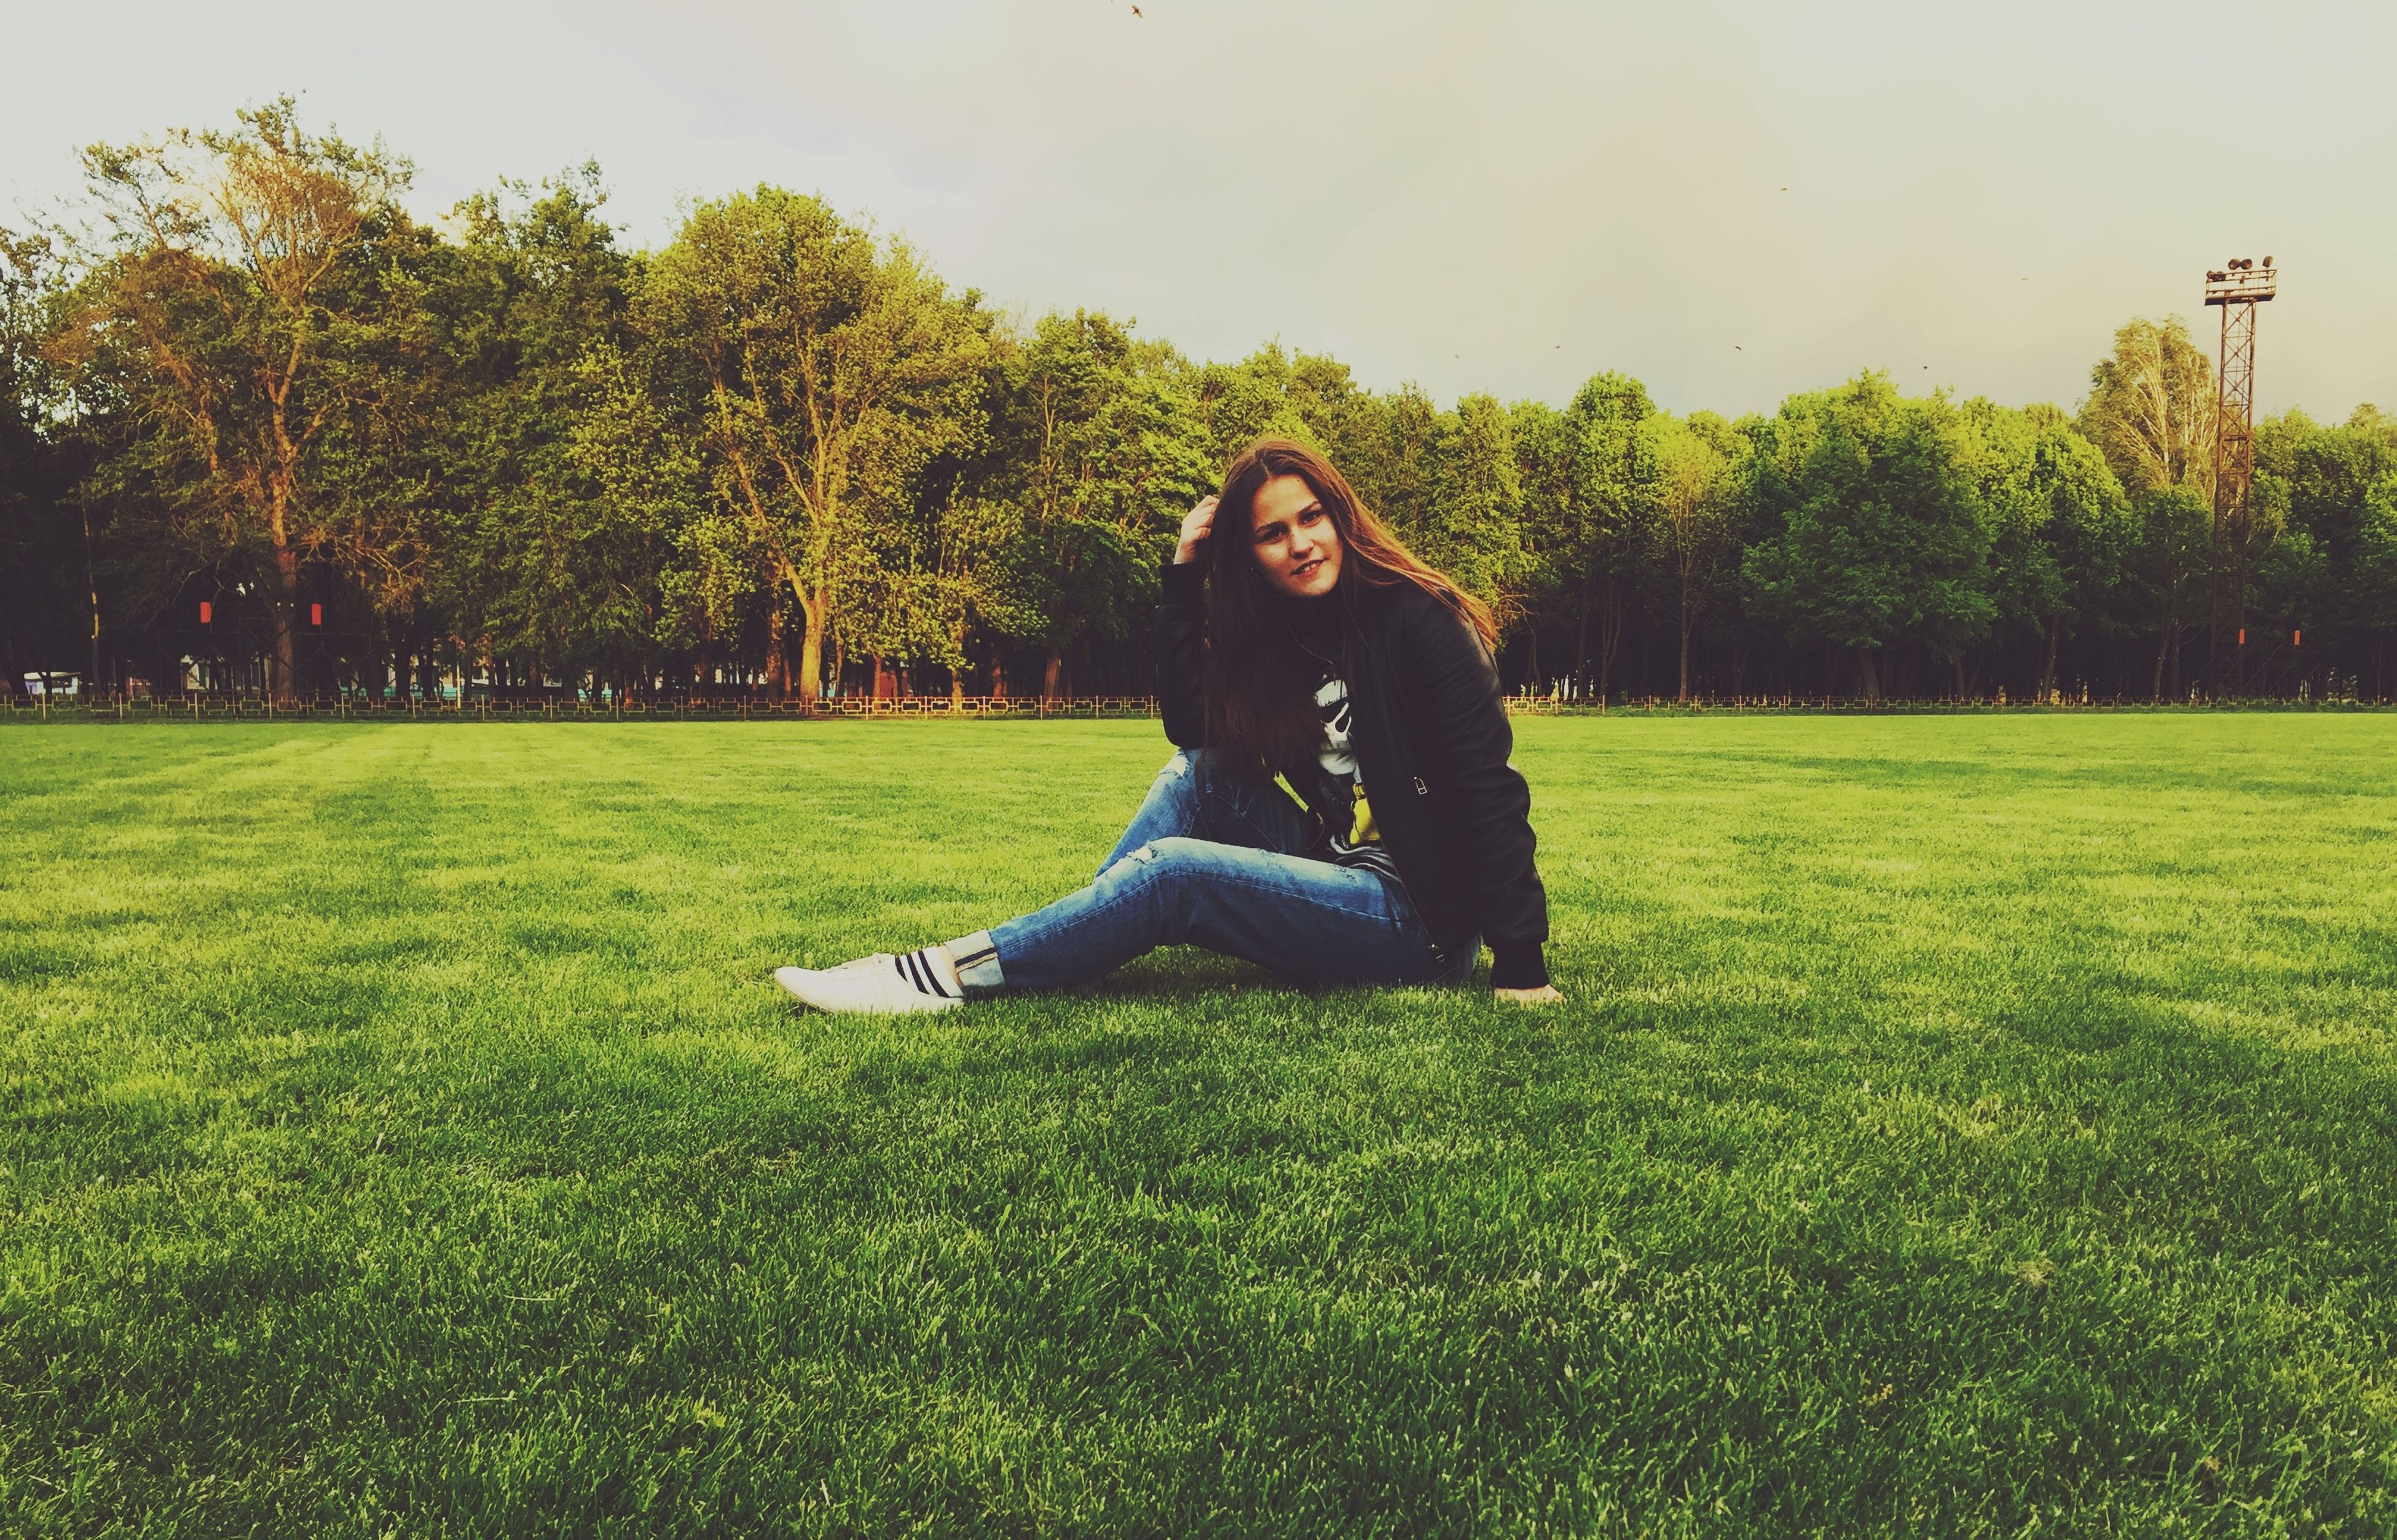 grass, young adult, lifestyles, person, leisure activity, full length, young women, tree, casual clothing, sitting, park - man made space, looking at camera, portrait, smiling, grassy, field, green color, happiness